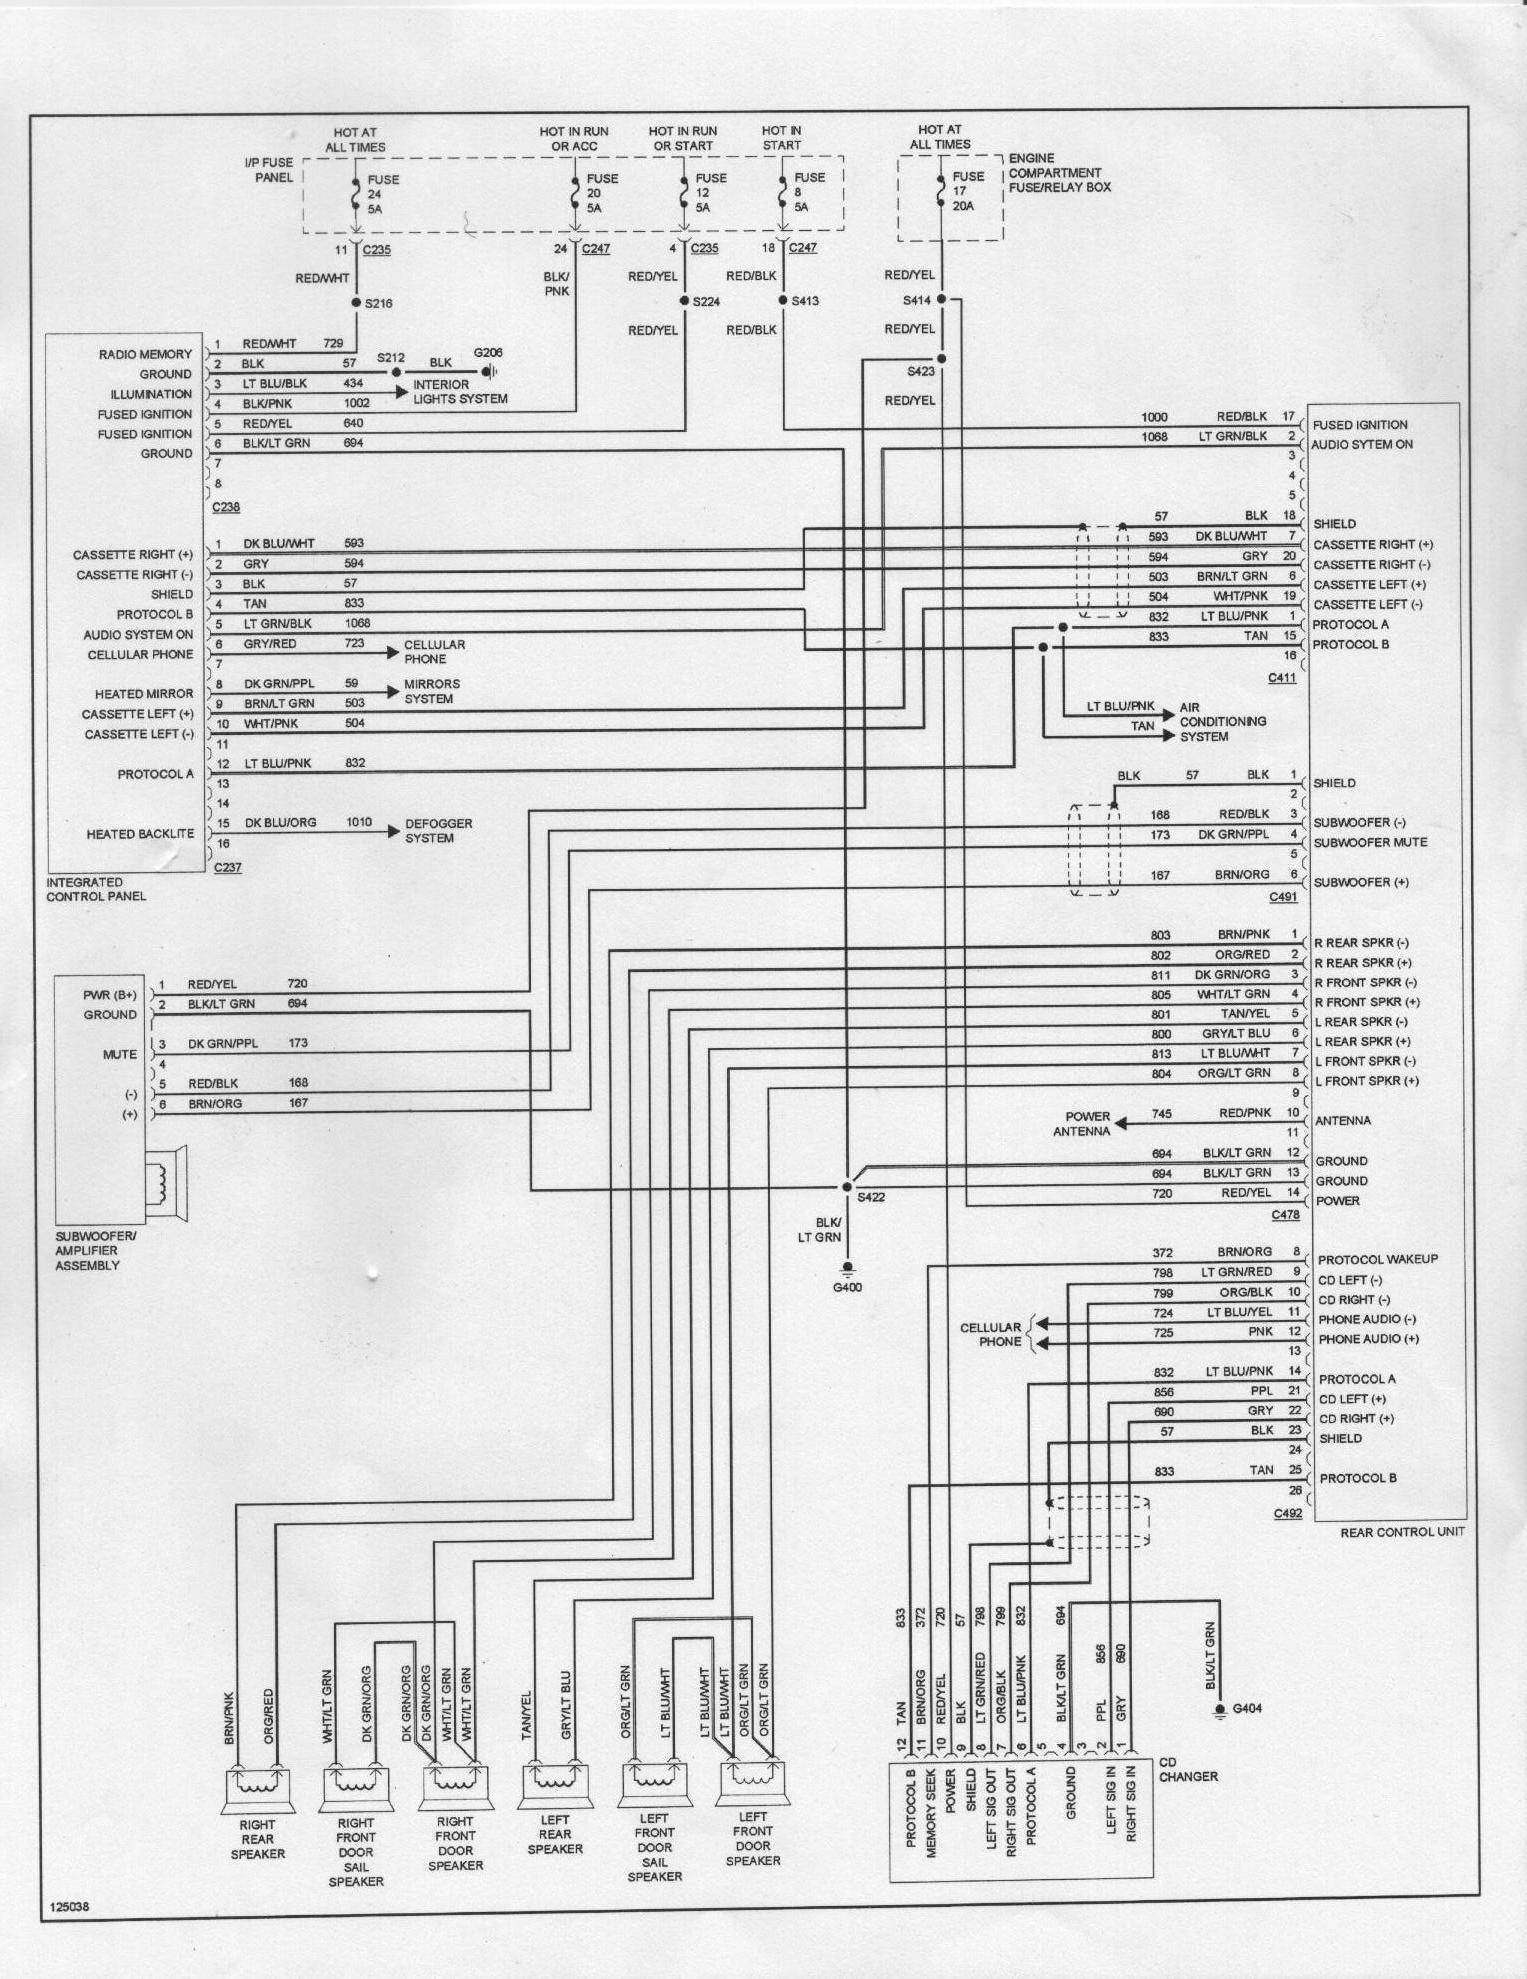 Wiring Diagram Ford Taurus Taurus Car Club Of America Ford